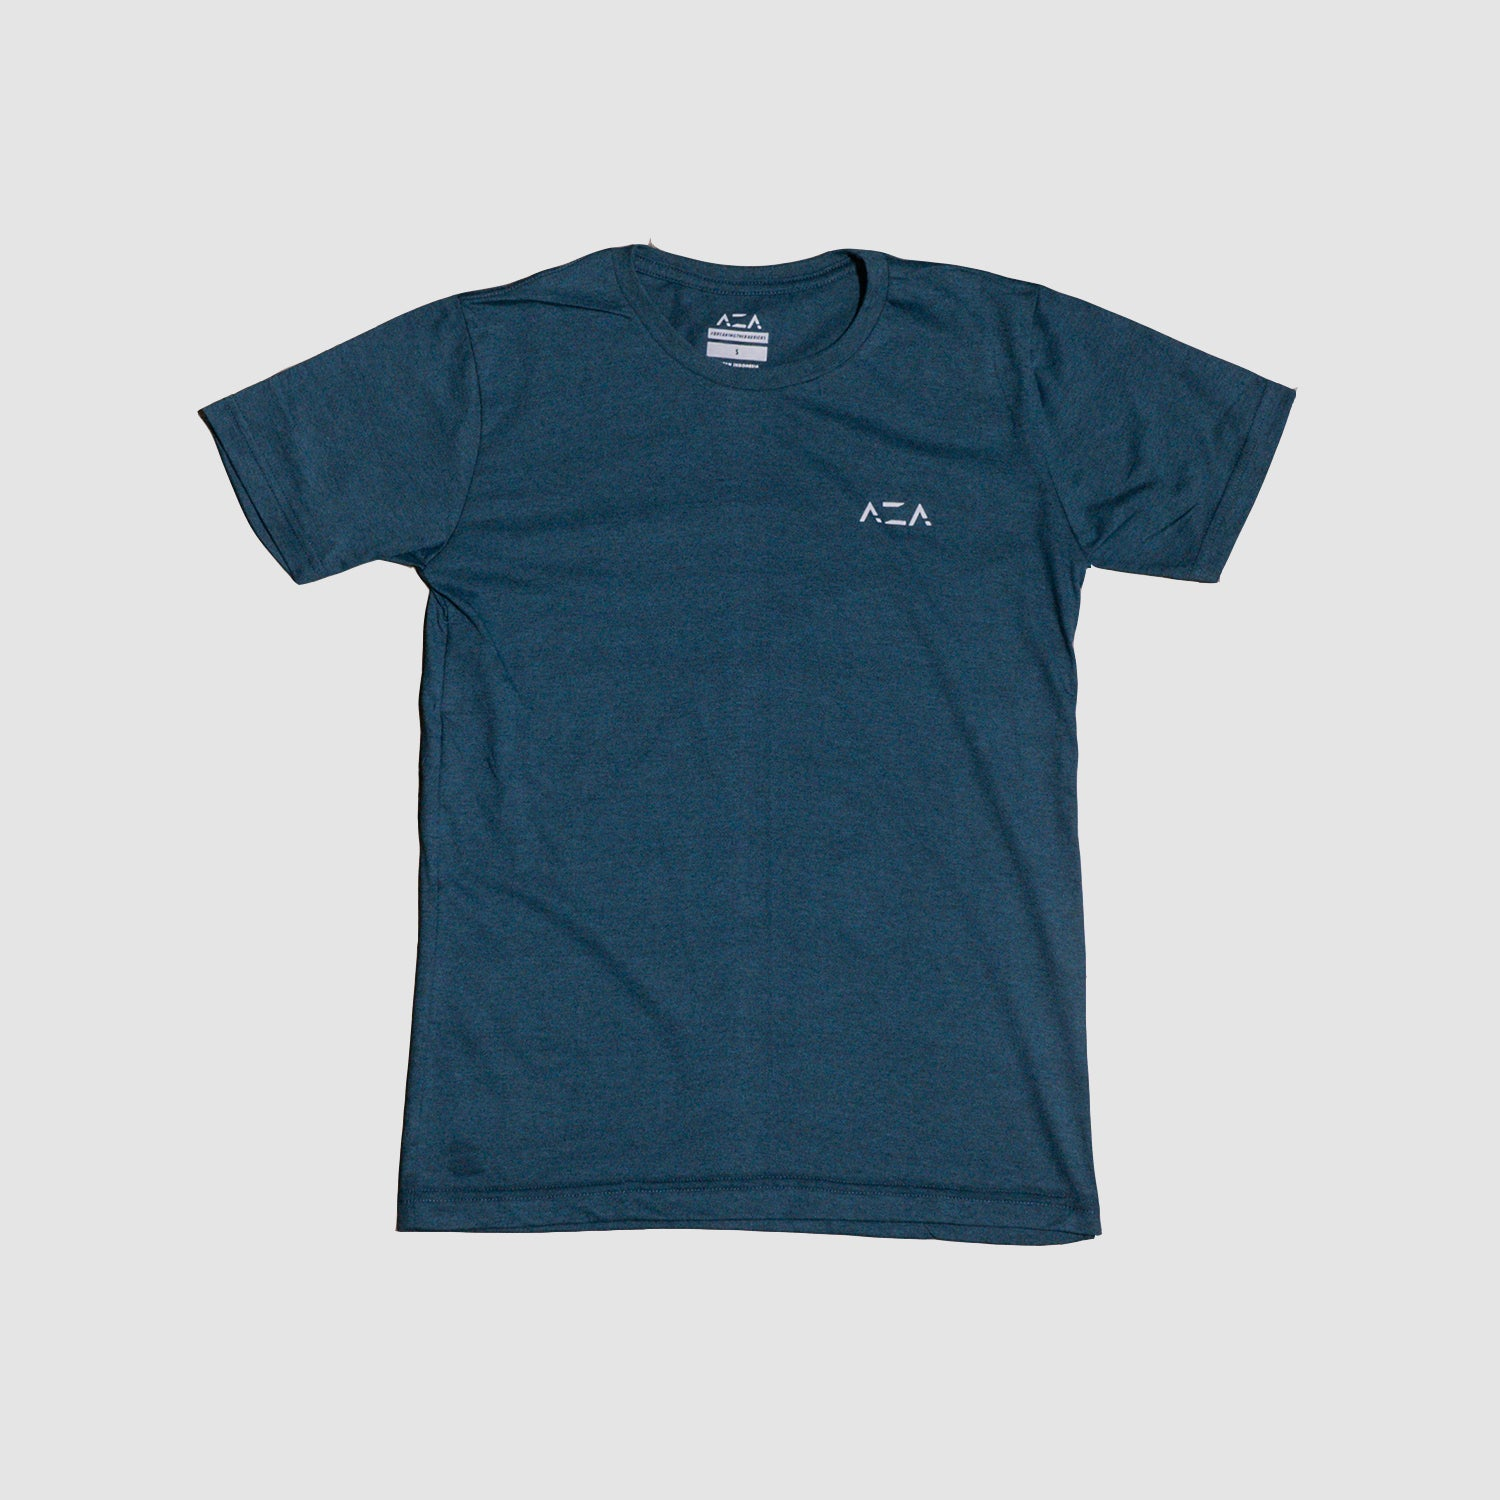 AZA Basic T-Shirt - Navy